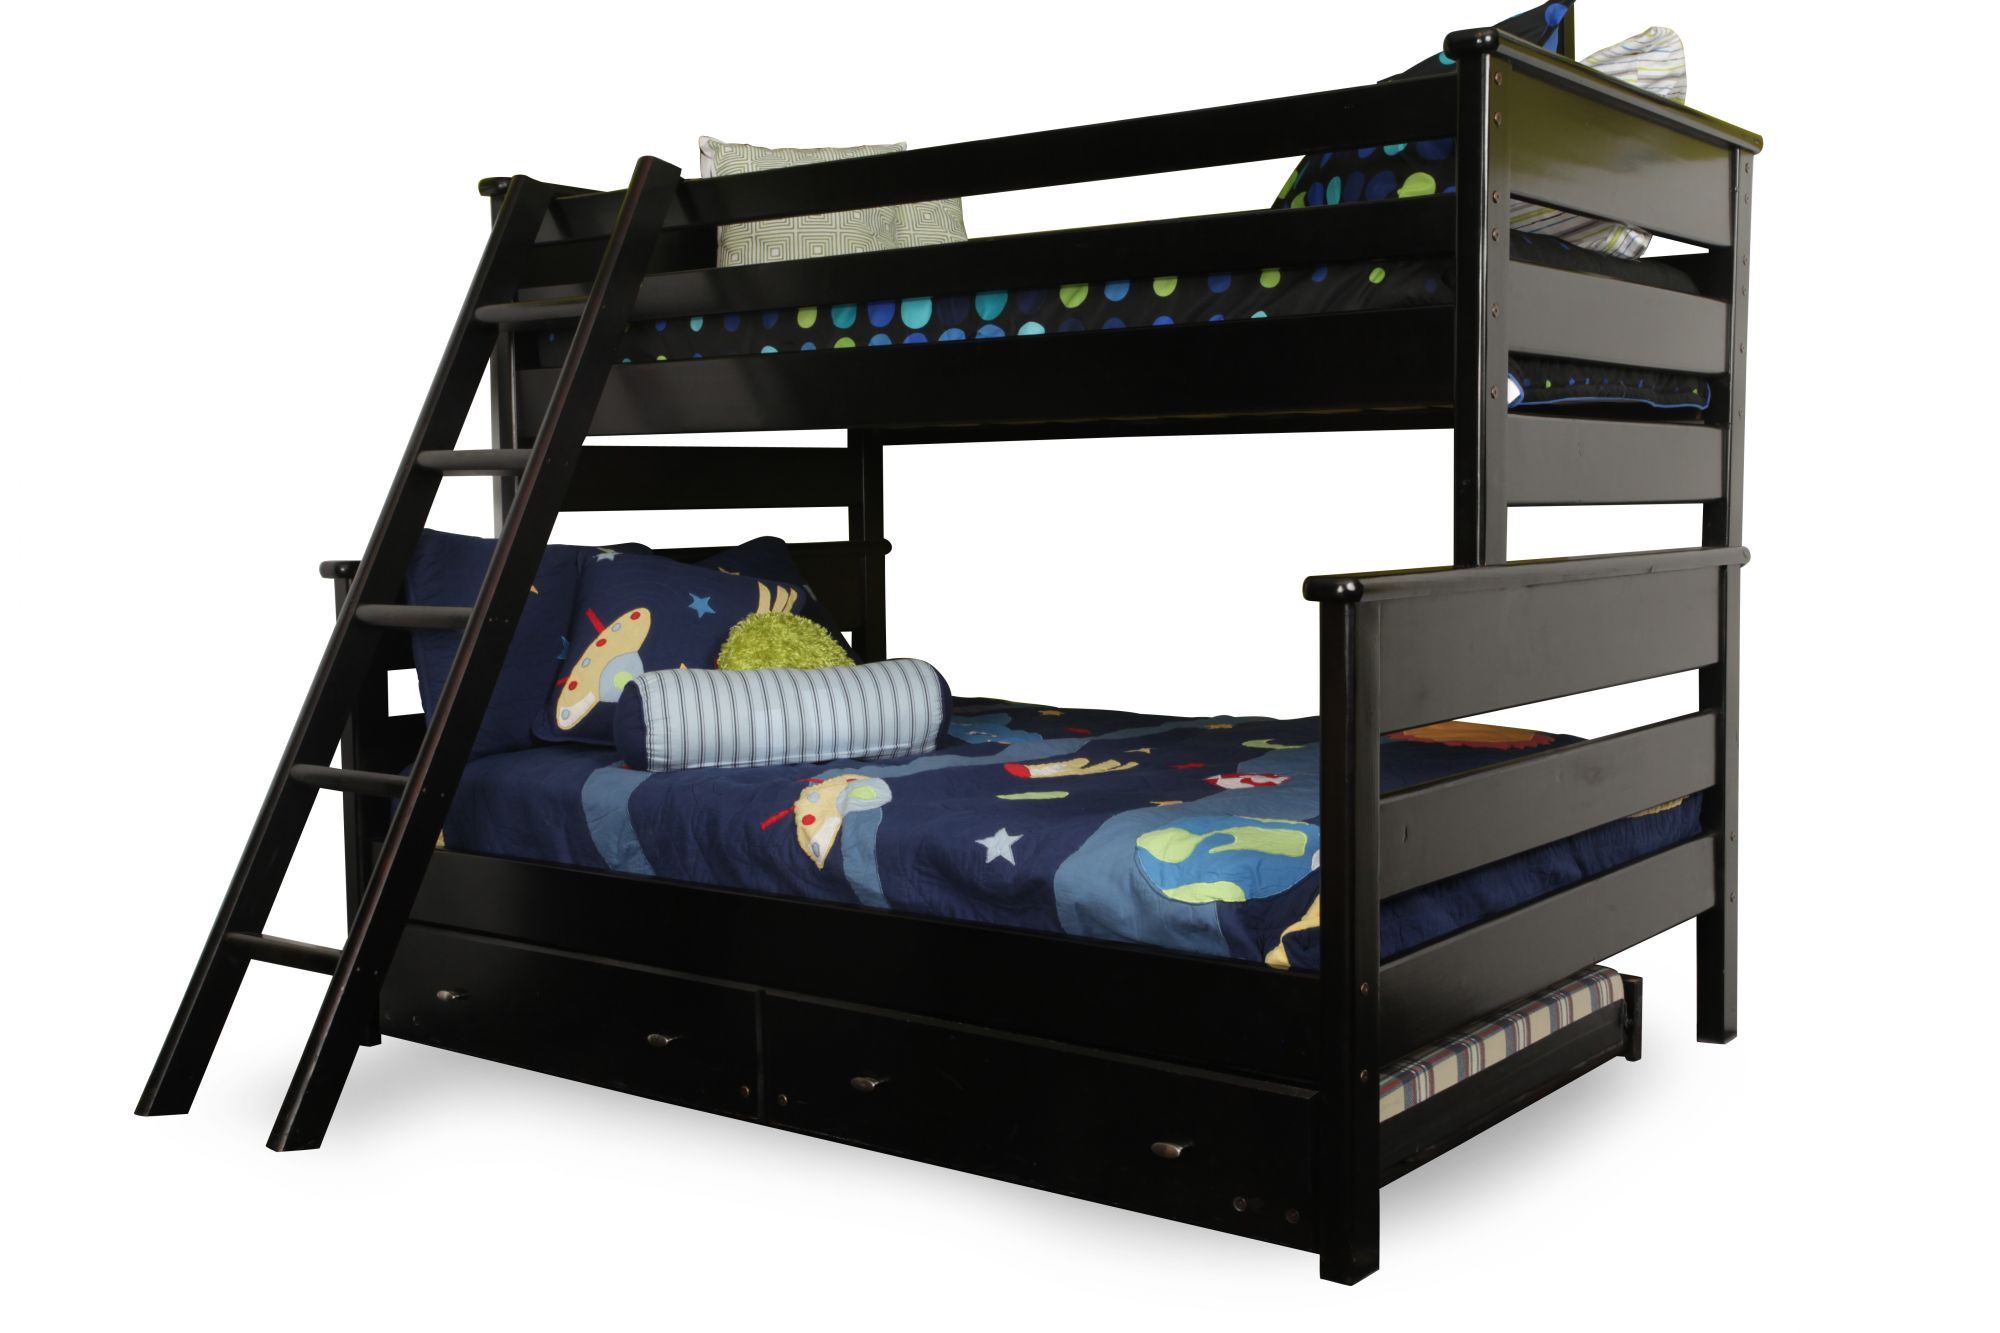 Magnificent Mathis Brothers Bedroom Sets On Dining Room Bed Bunk Beds mathis brothers furniture bedroom sets. mathis brothers bedroom sets. mathis brothers 5 piece bedroom sets. mathis brothers bedroom sets on sale. mathis brothers bedroom set. bedroom sets at mathis brothers. mathis brothers bedroom sets white.